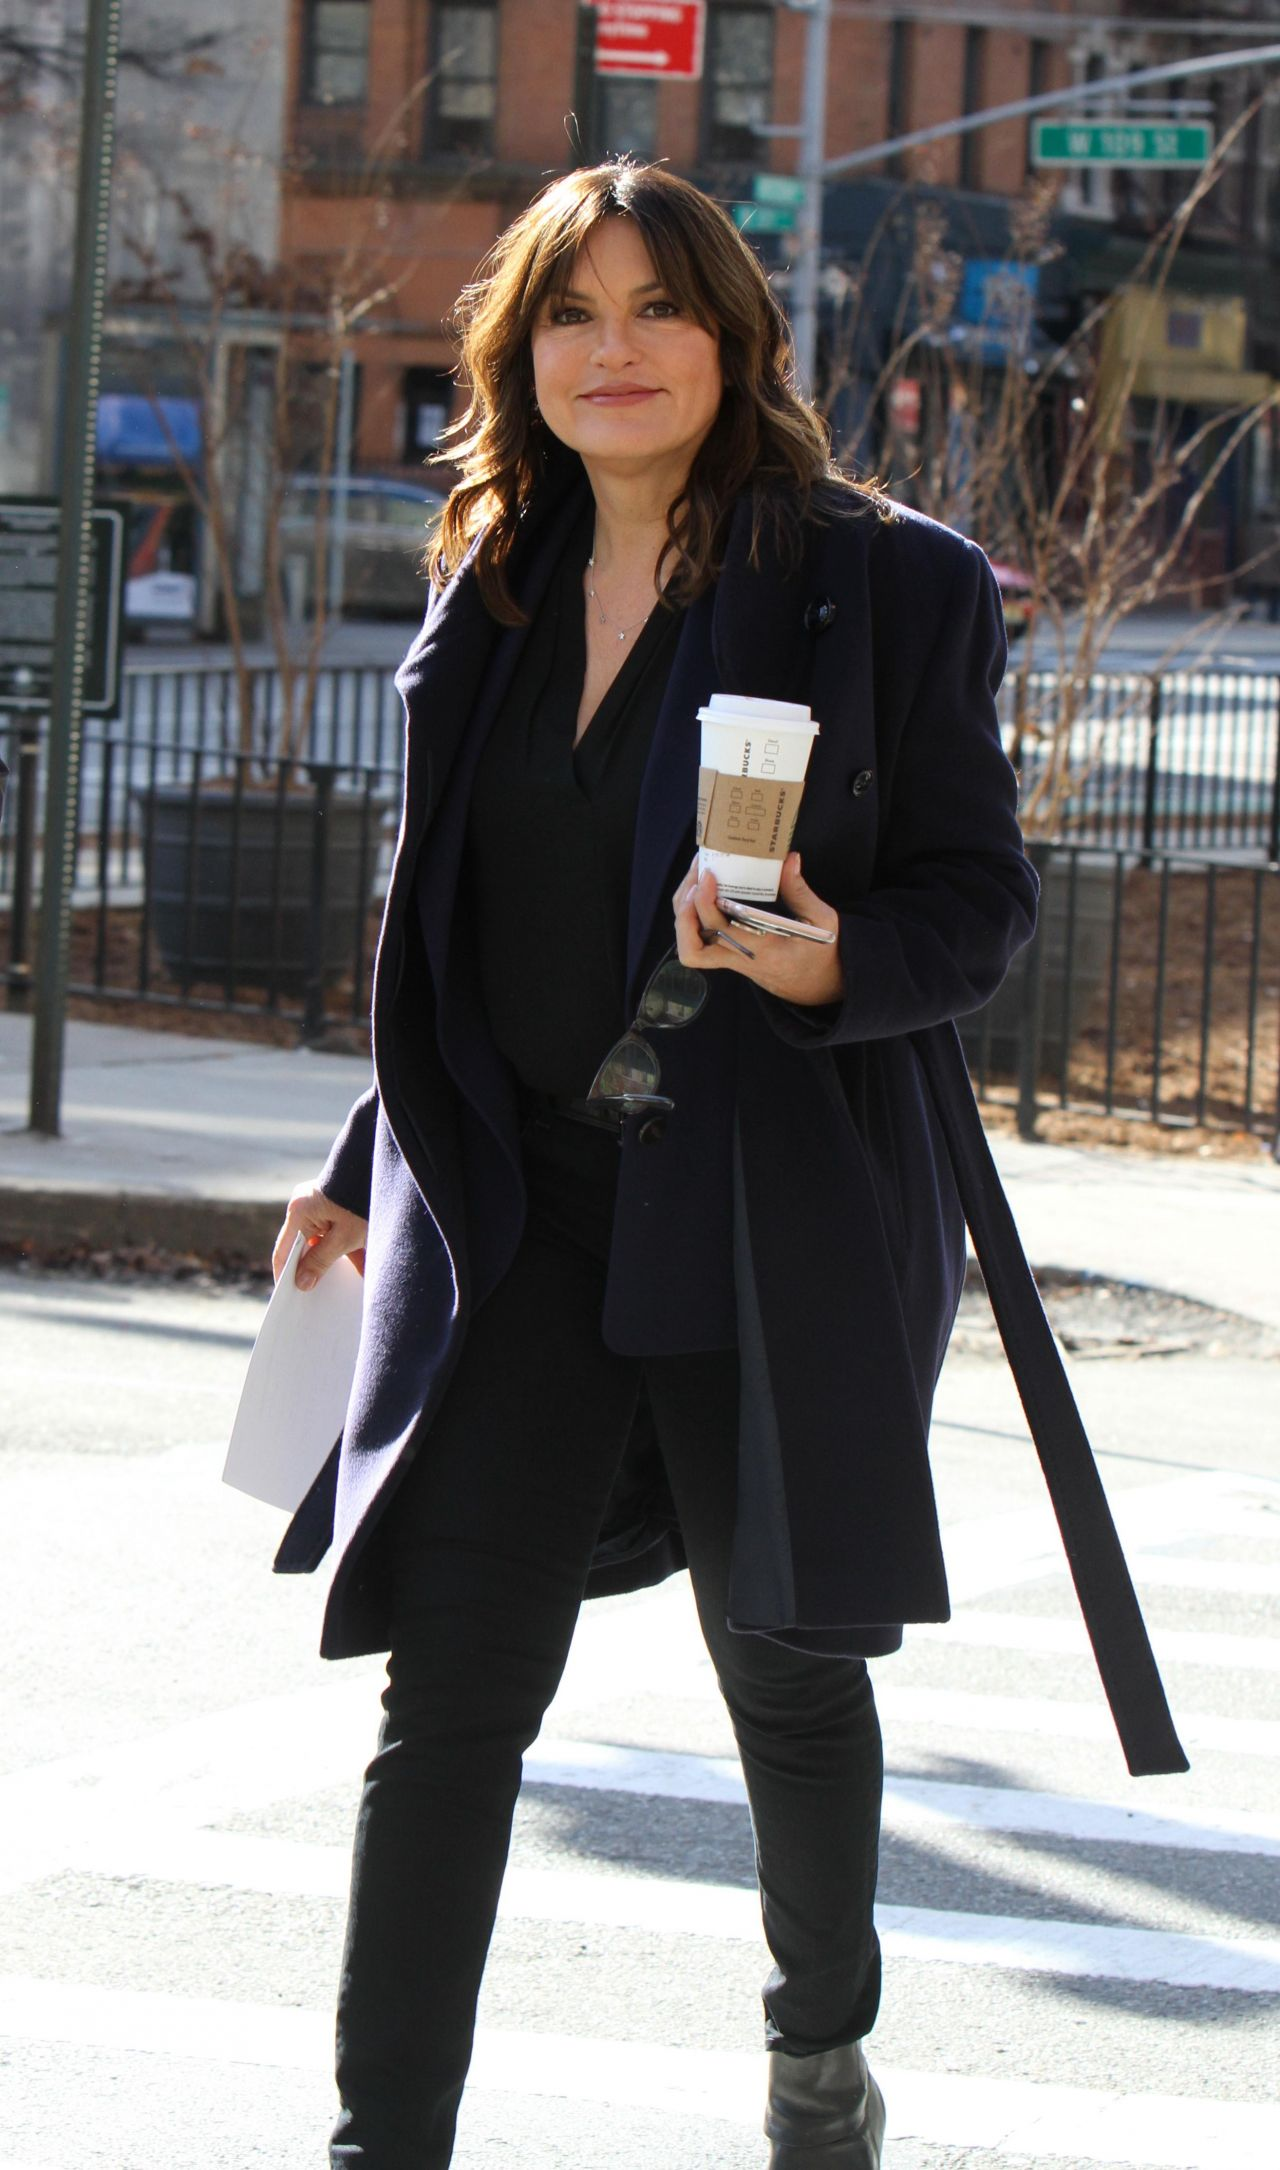 Mariska Hargitay Quot Law And Order Svu Quot Set In New York City